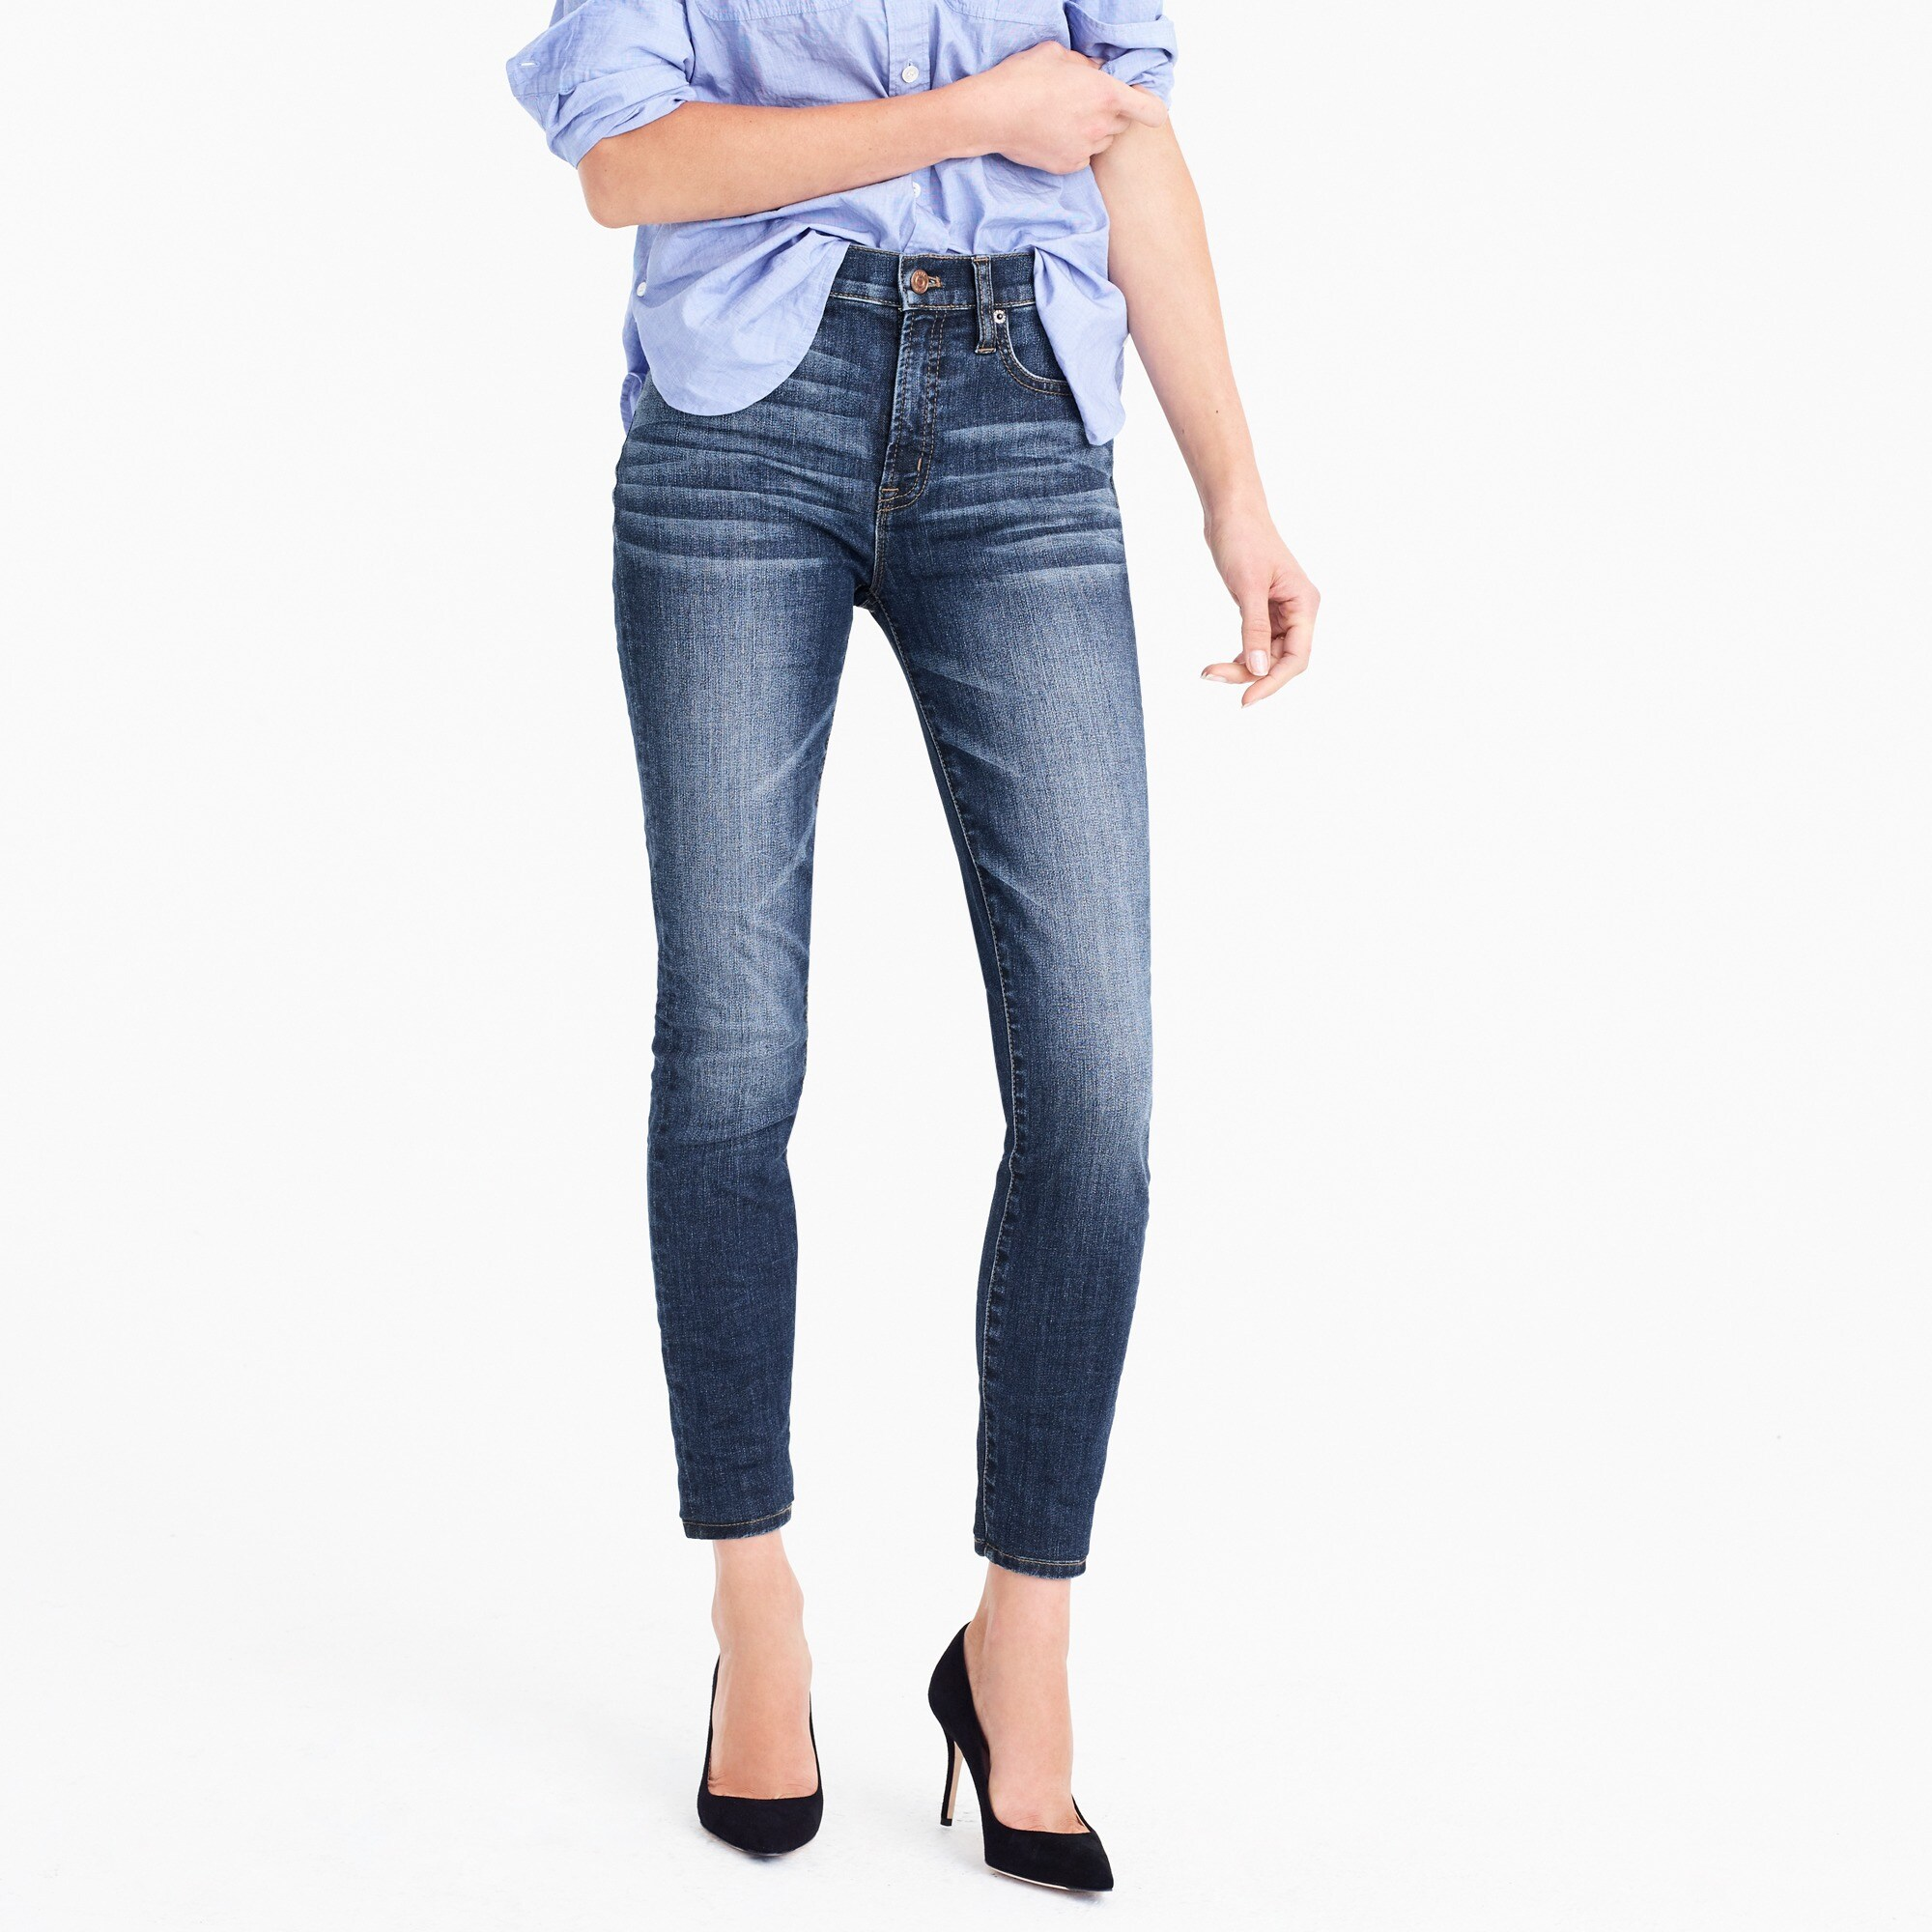 "tall 9"" high-rise toothpick jean in prescott wash : women denim"